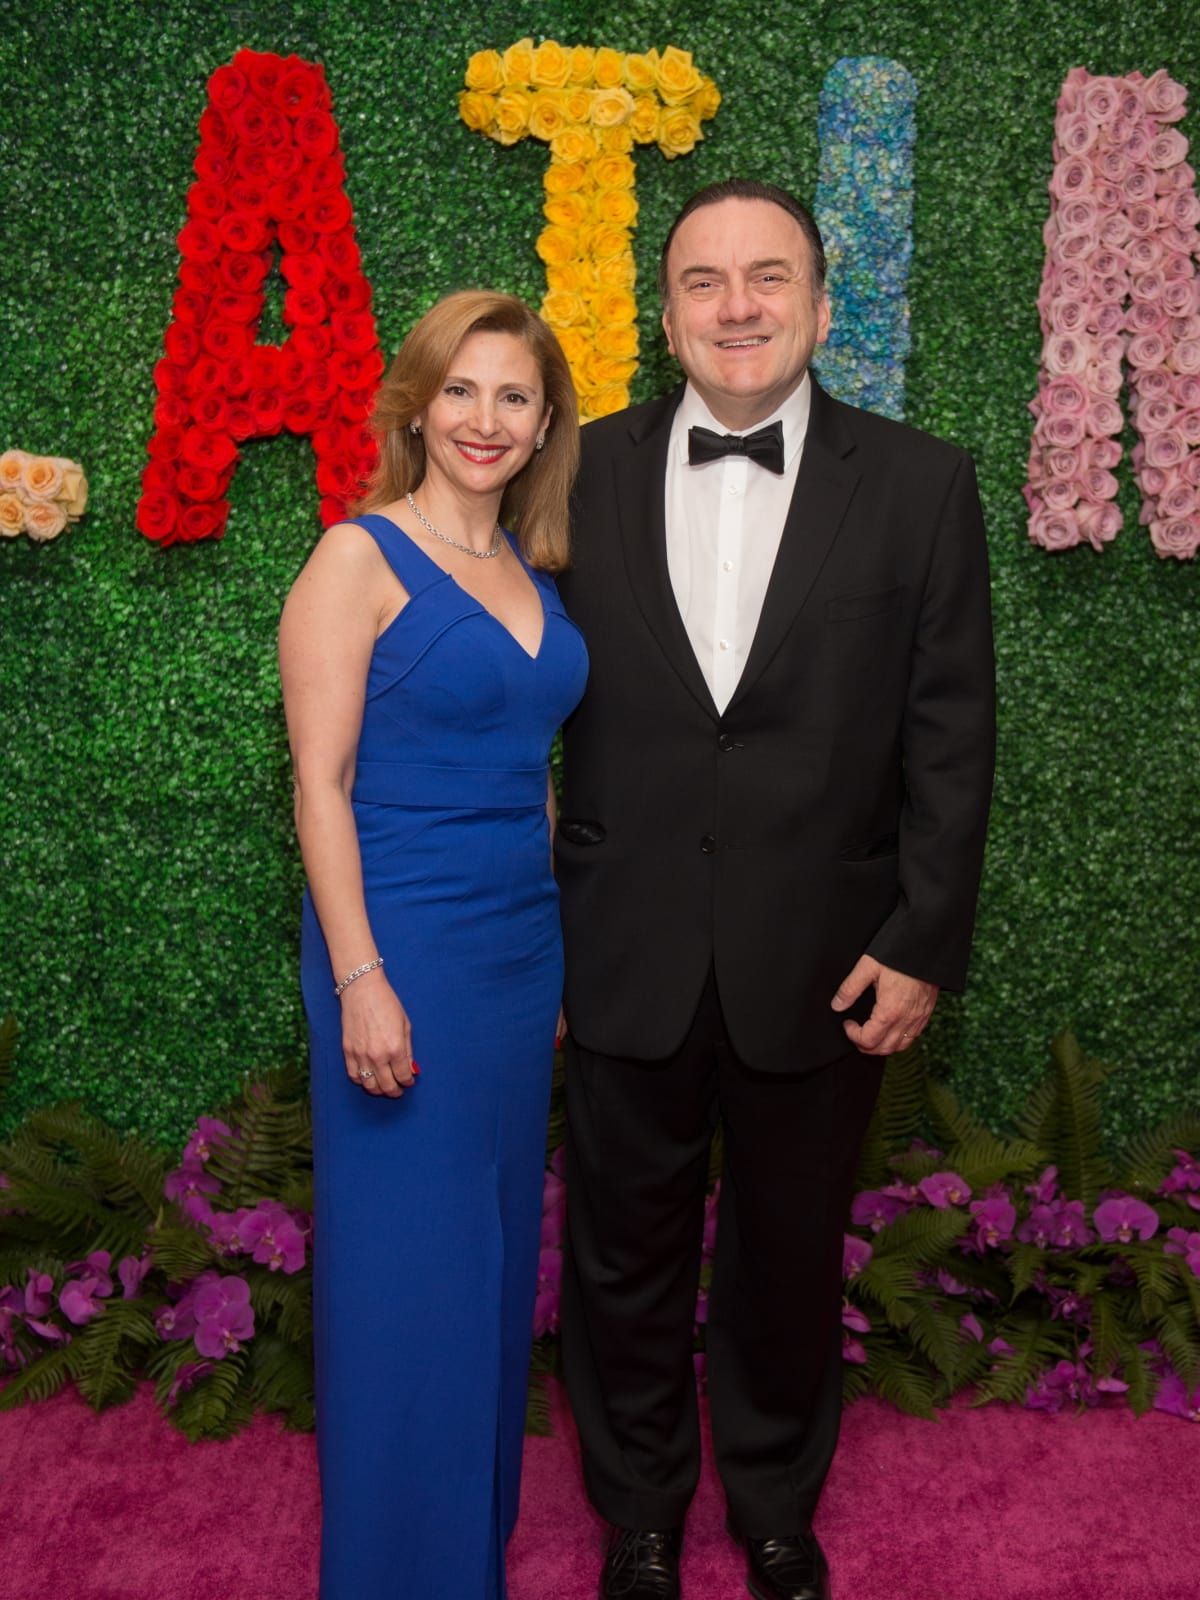 Liliane Haddad, Johny Rizk at Latin American Gala